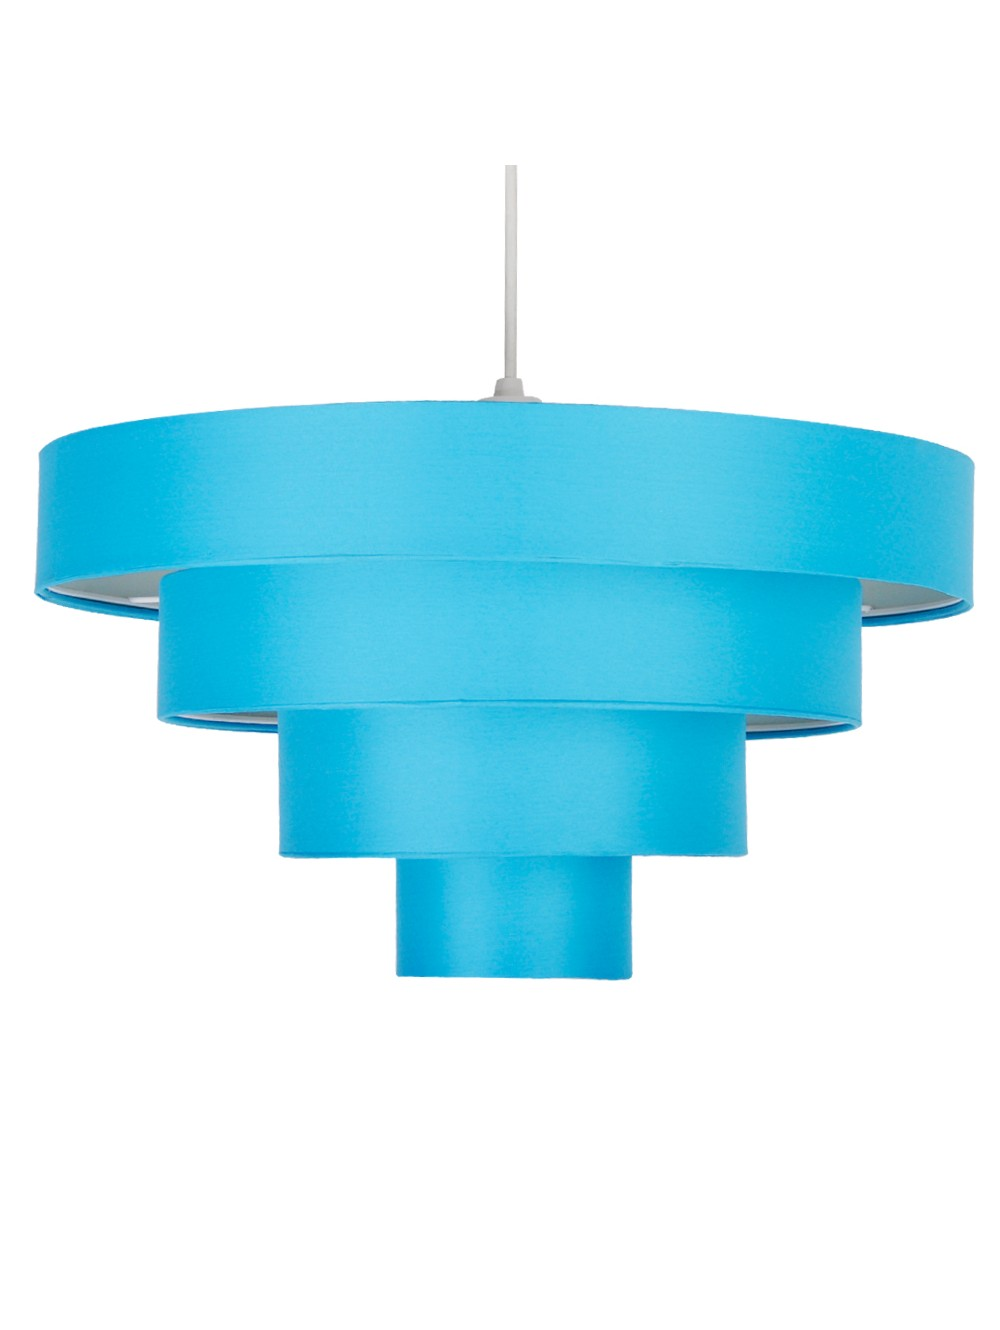 Teal ceiling light 13 perfect decorations for rooms with darker transparent teal ceiling light aloadofball Image collections